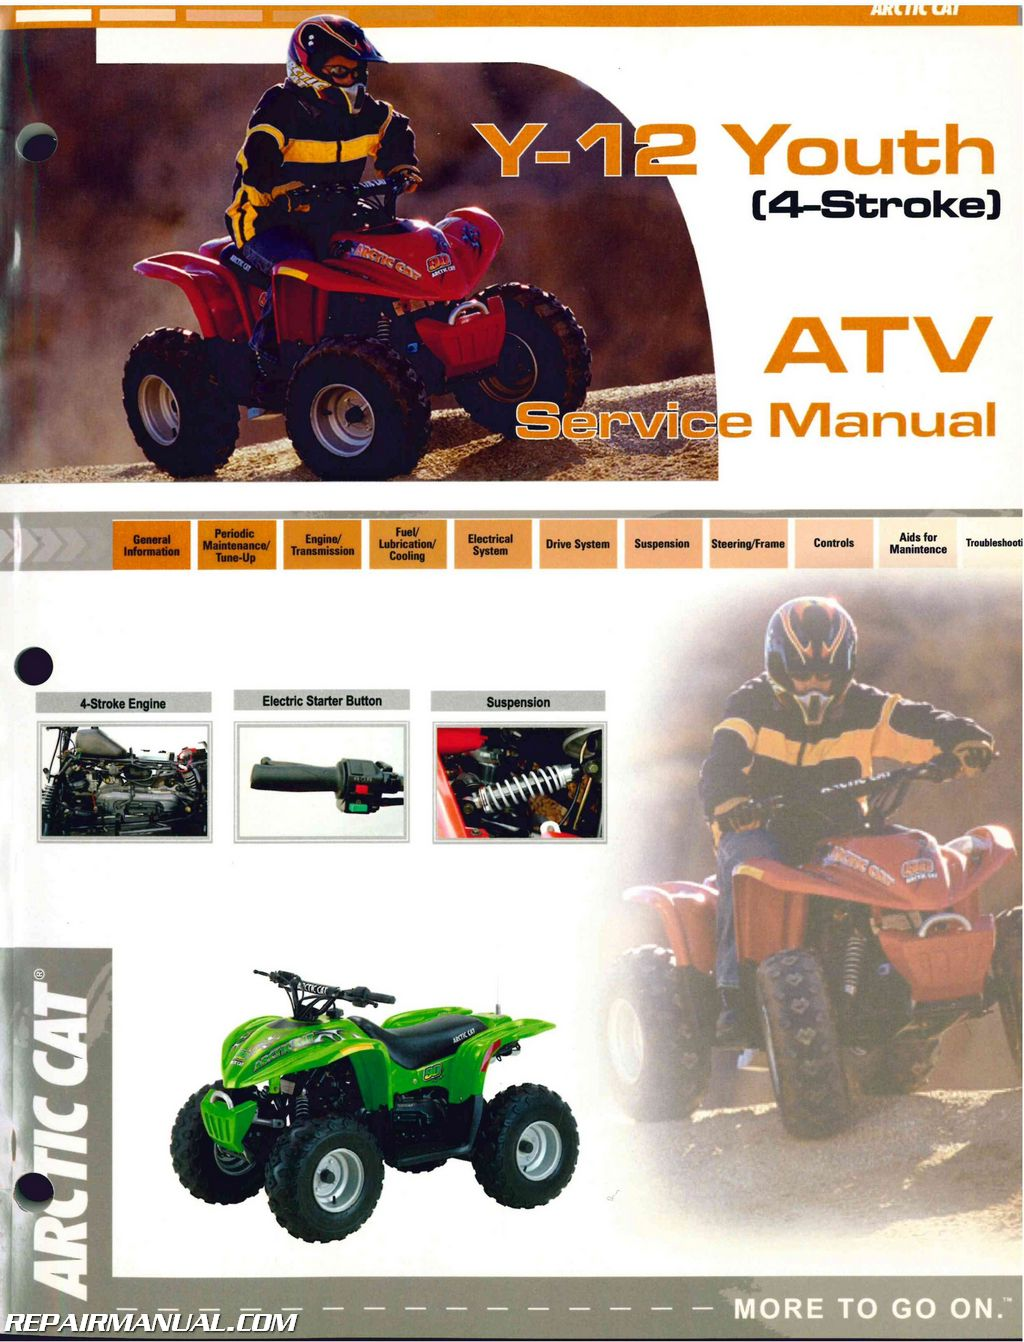 Arctic Cat 90 Wiring Diagram Schematic Diagrams Z570 Snowmobile Youth All Kind Of U2022 Yamaha Raptor 125